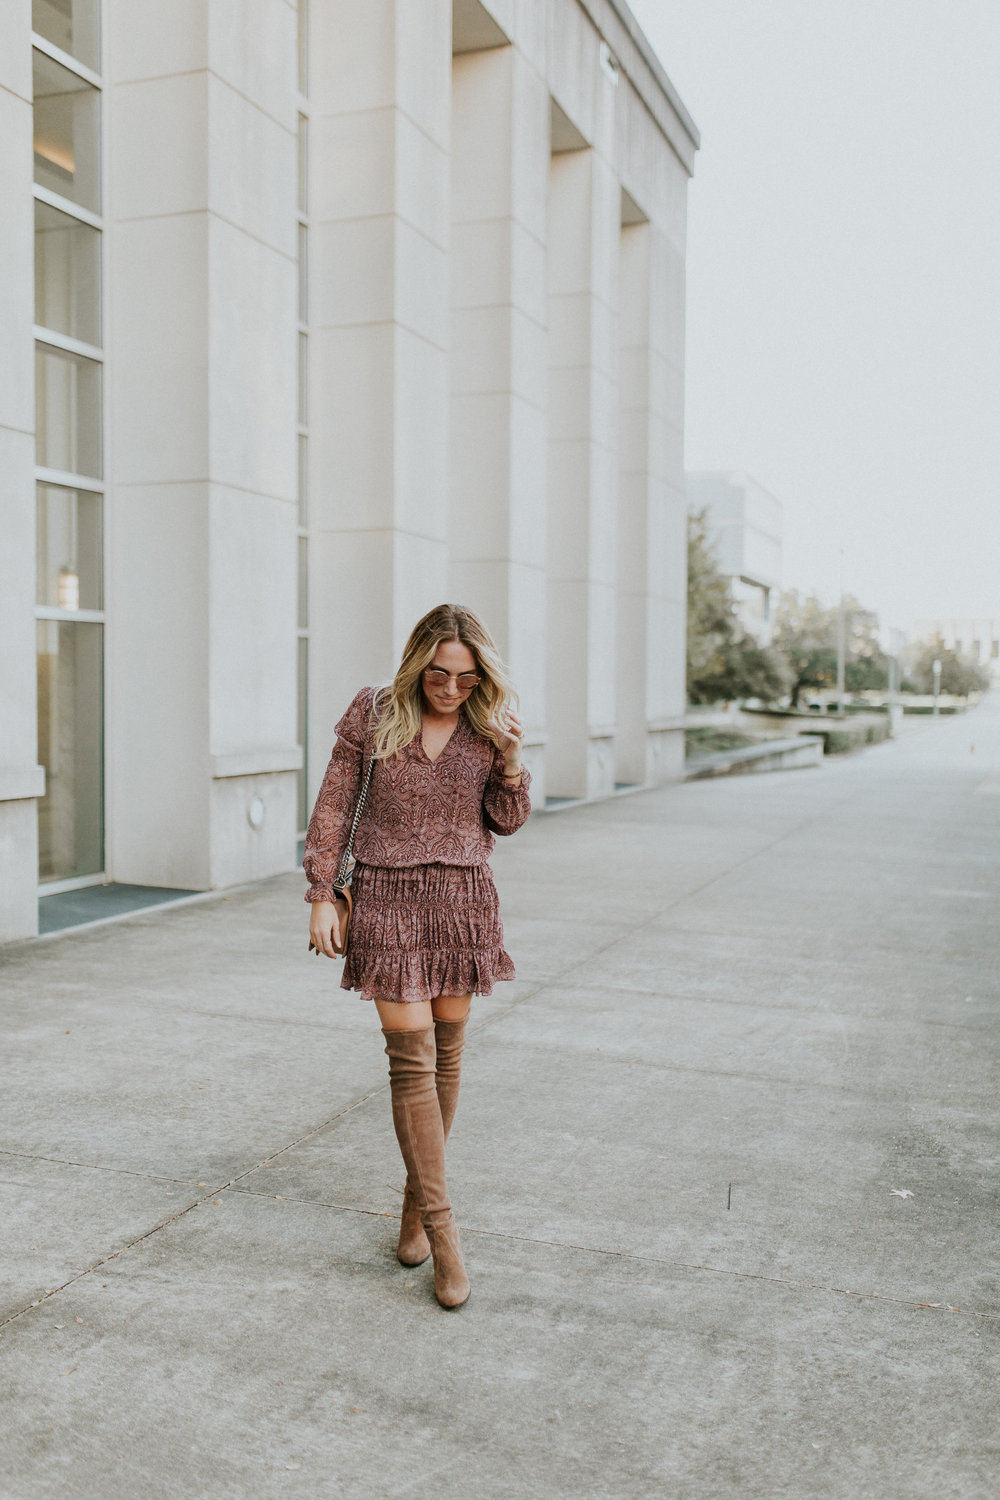 Blogger Gracefully Taylored in Joie Dress and Stuart Weitzman Boots.jpg